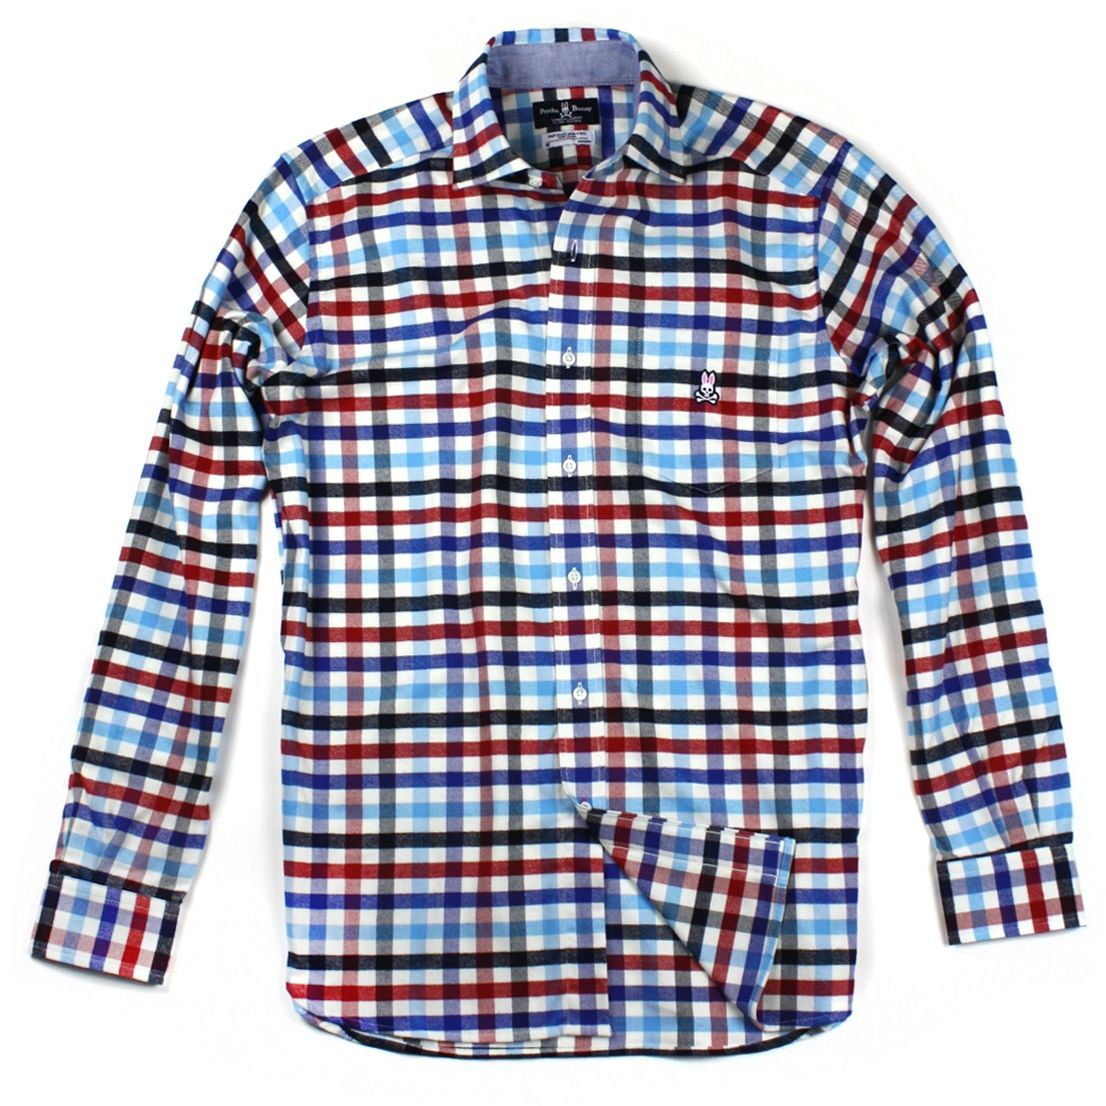 Casual flannel outfits  Multi Check Flannel Shirt by PSYCHO BUNNY  The Royal Bloke